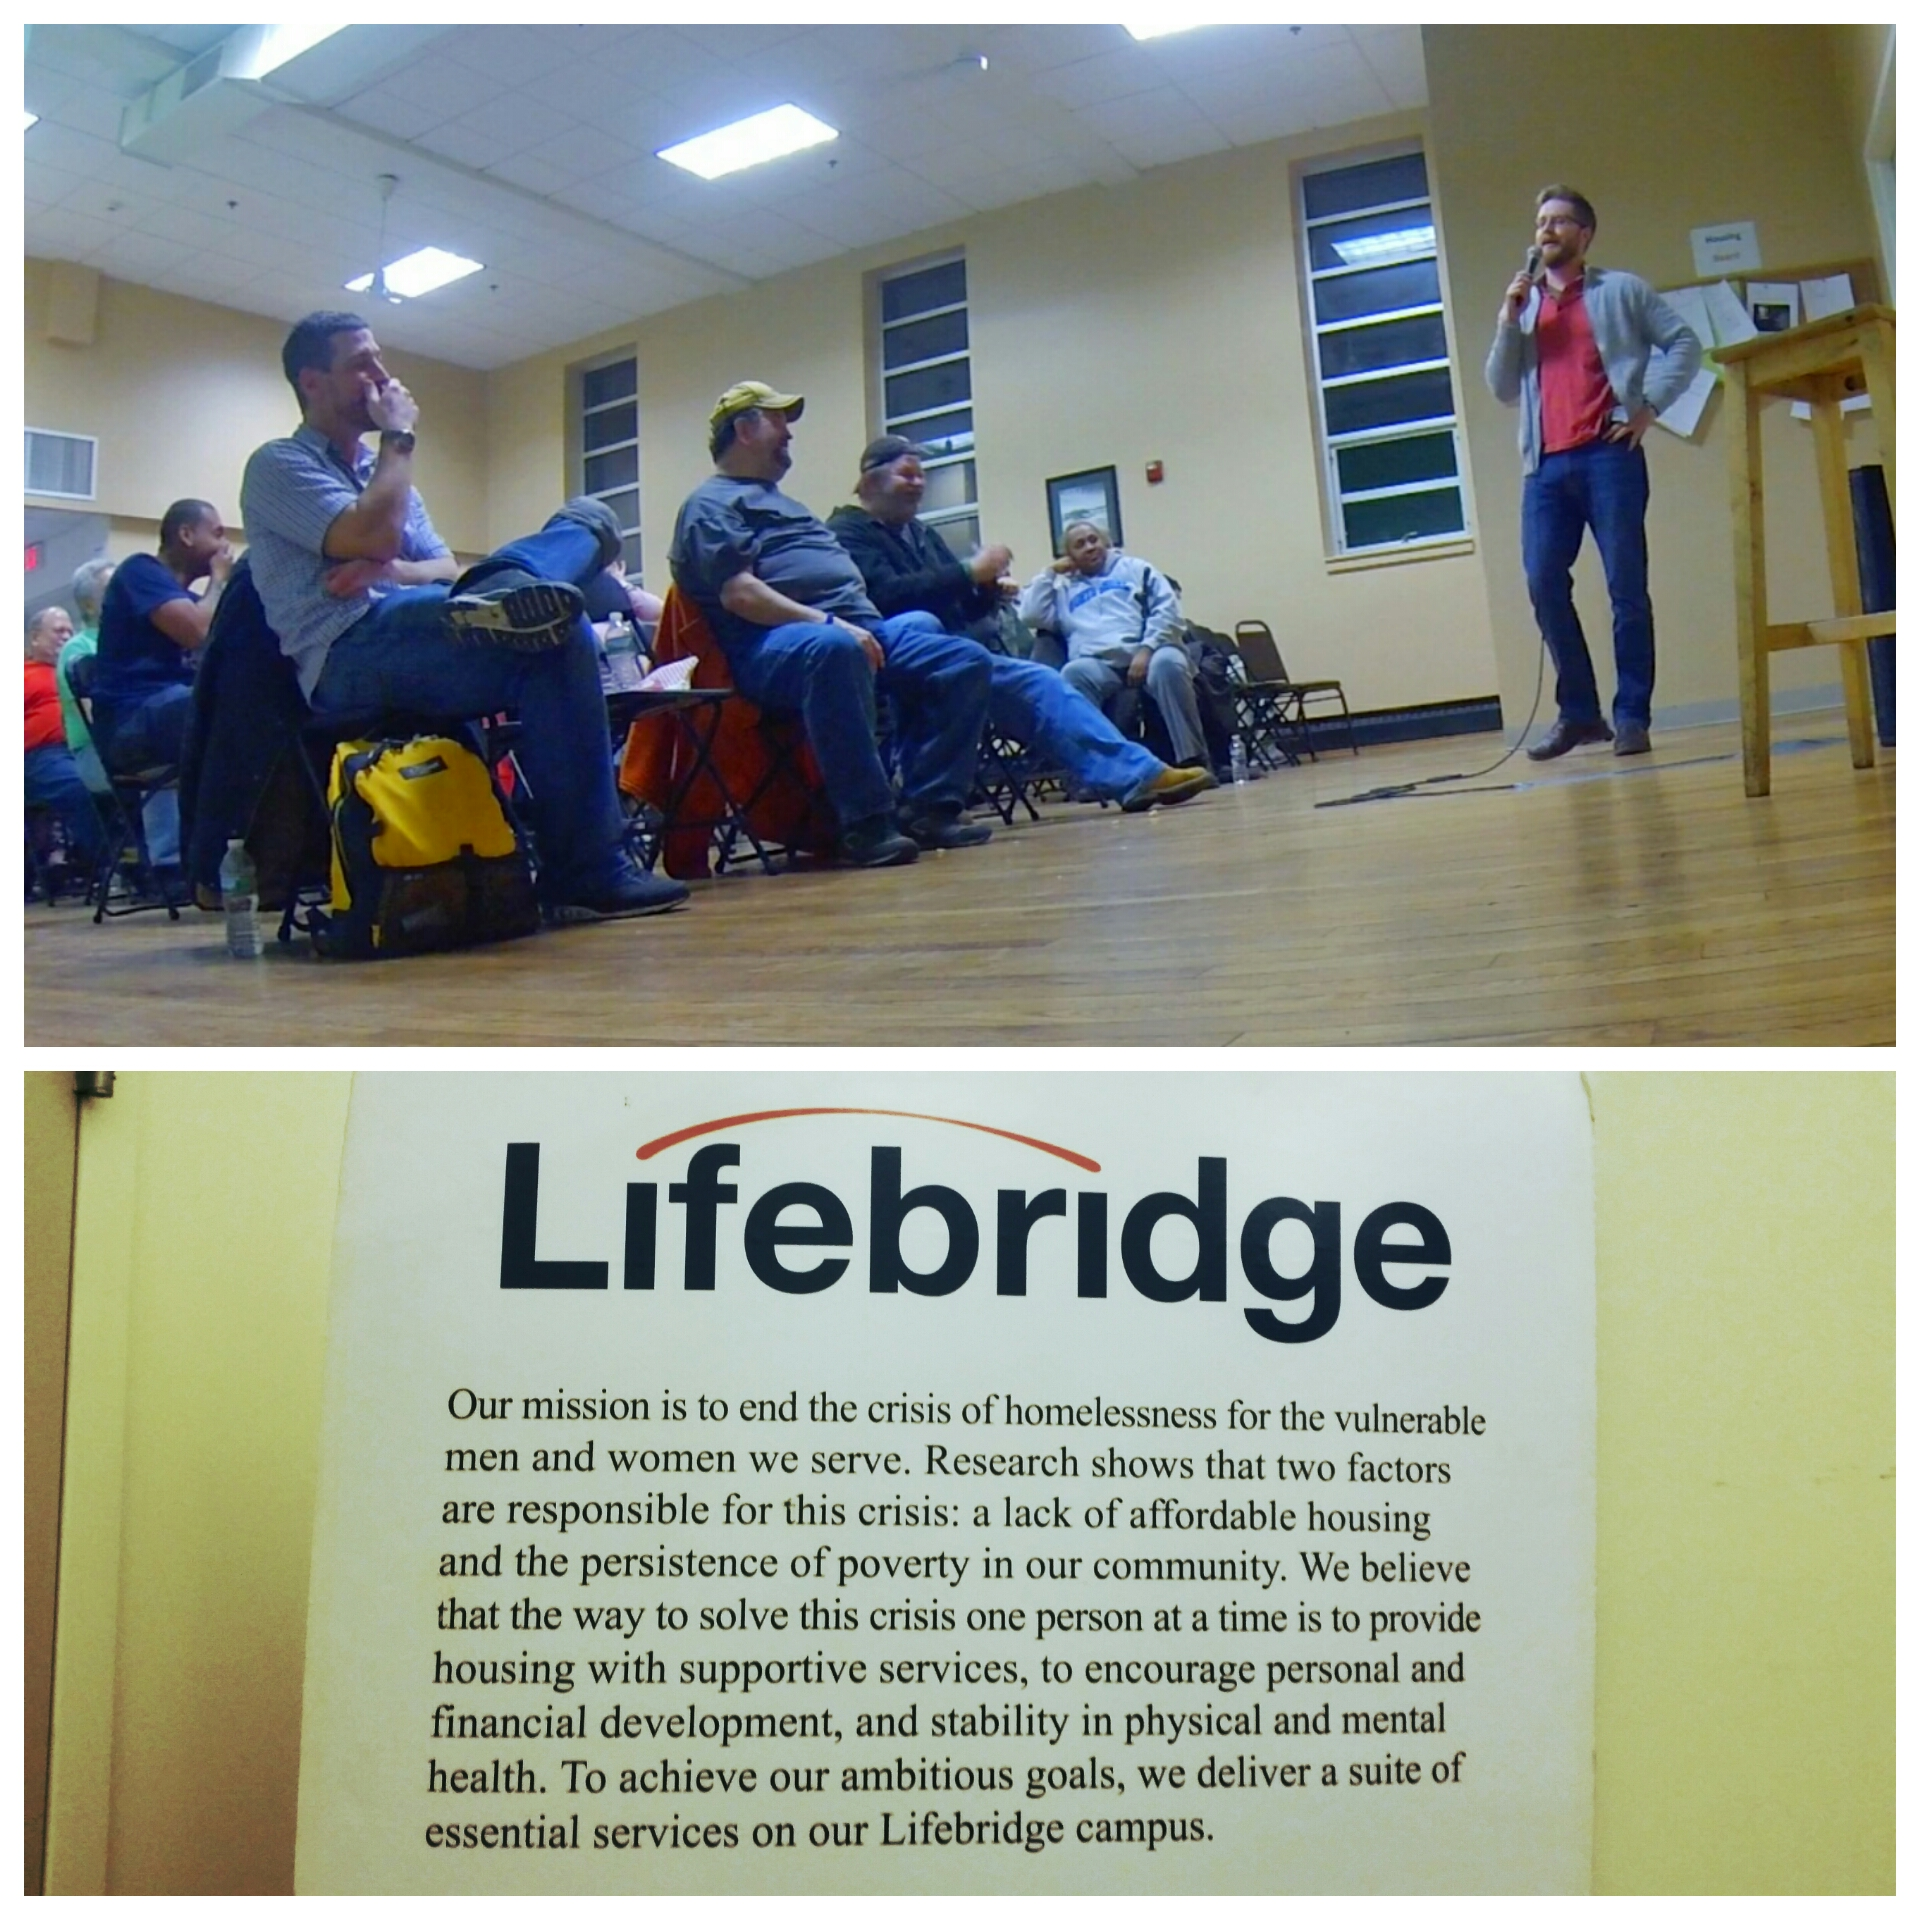 Lifebridge_2016-02-12.jpg